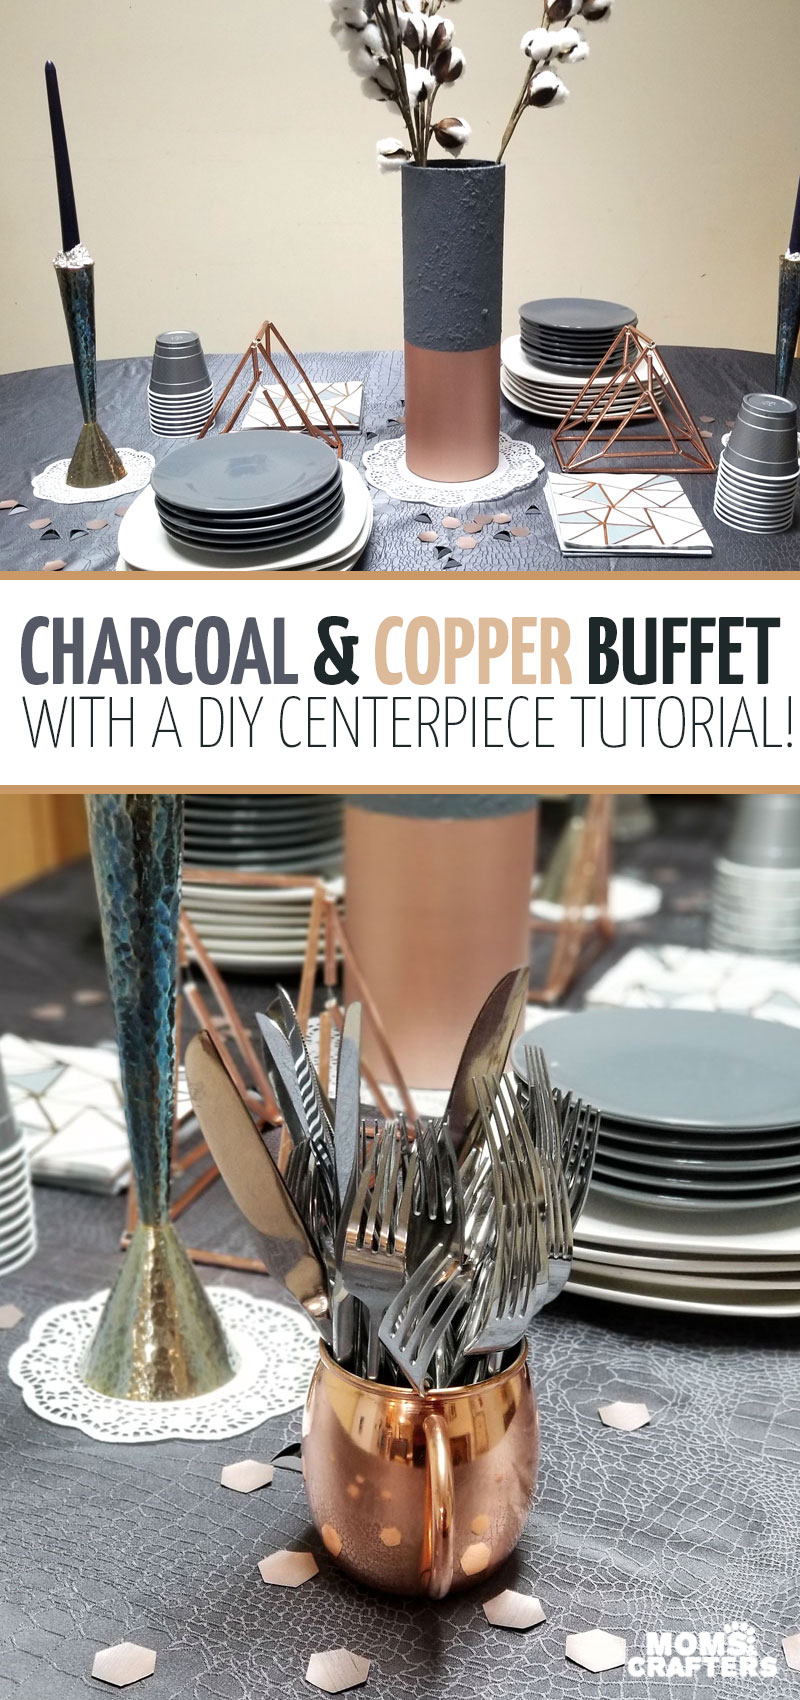 Click to read more about this gorgeous neutral tablescape idea featuring metallic copper and rose gold accents and shades of gray! It also features a painted vase makeover for a statement centerpiece.